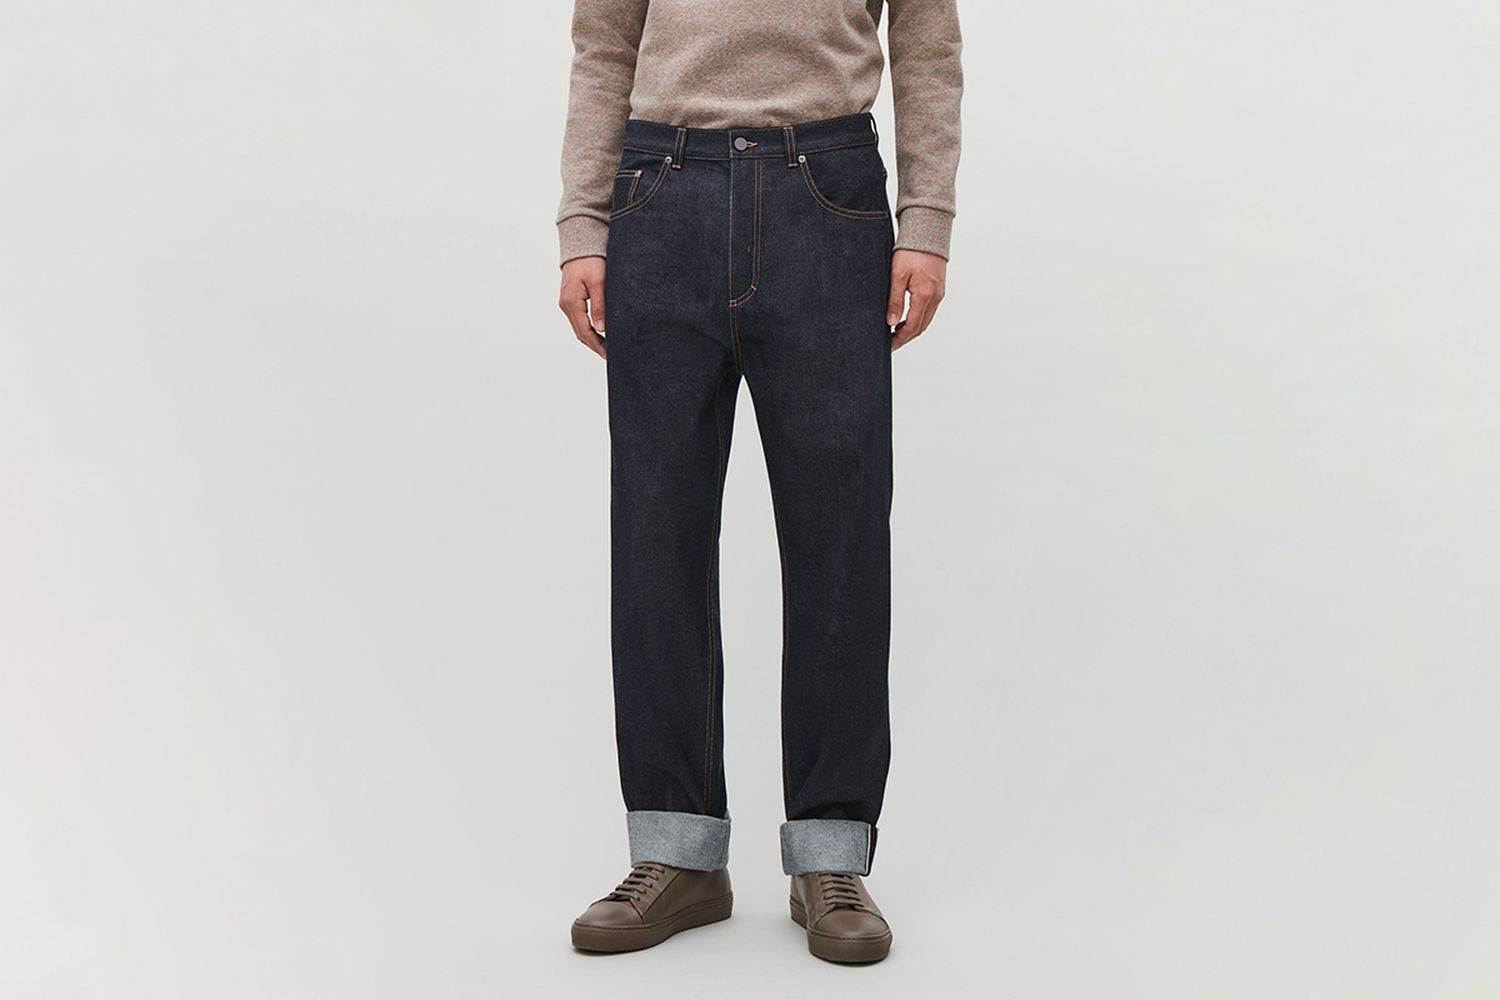 Relaxed Leg Jeans With Turn-Ups